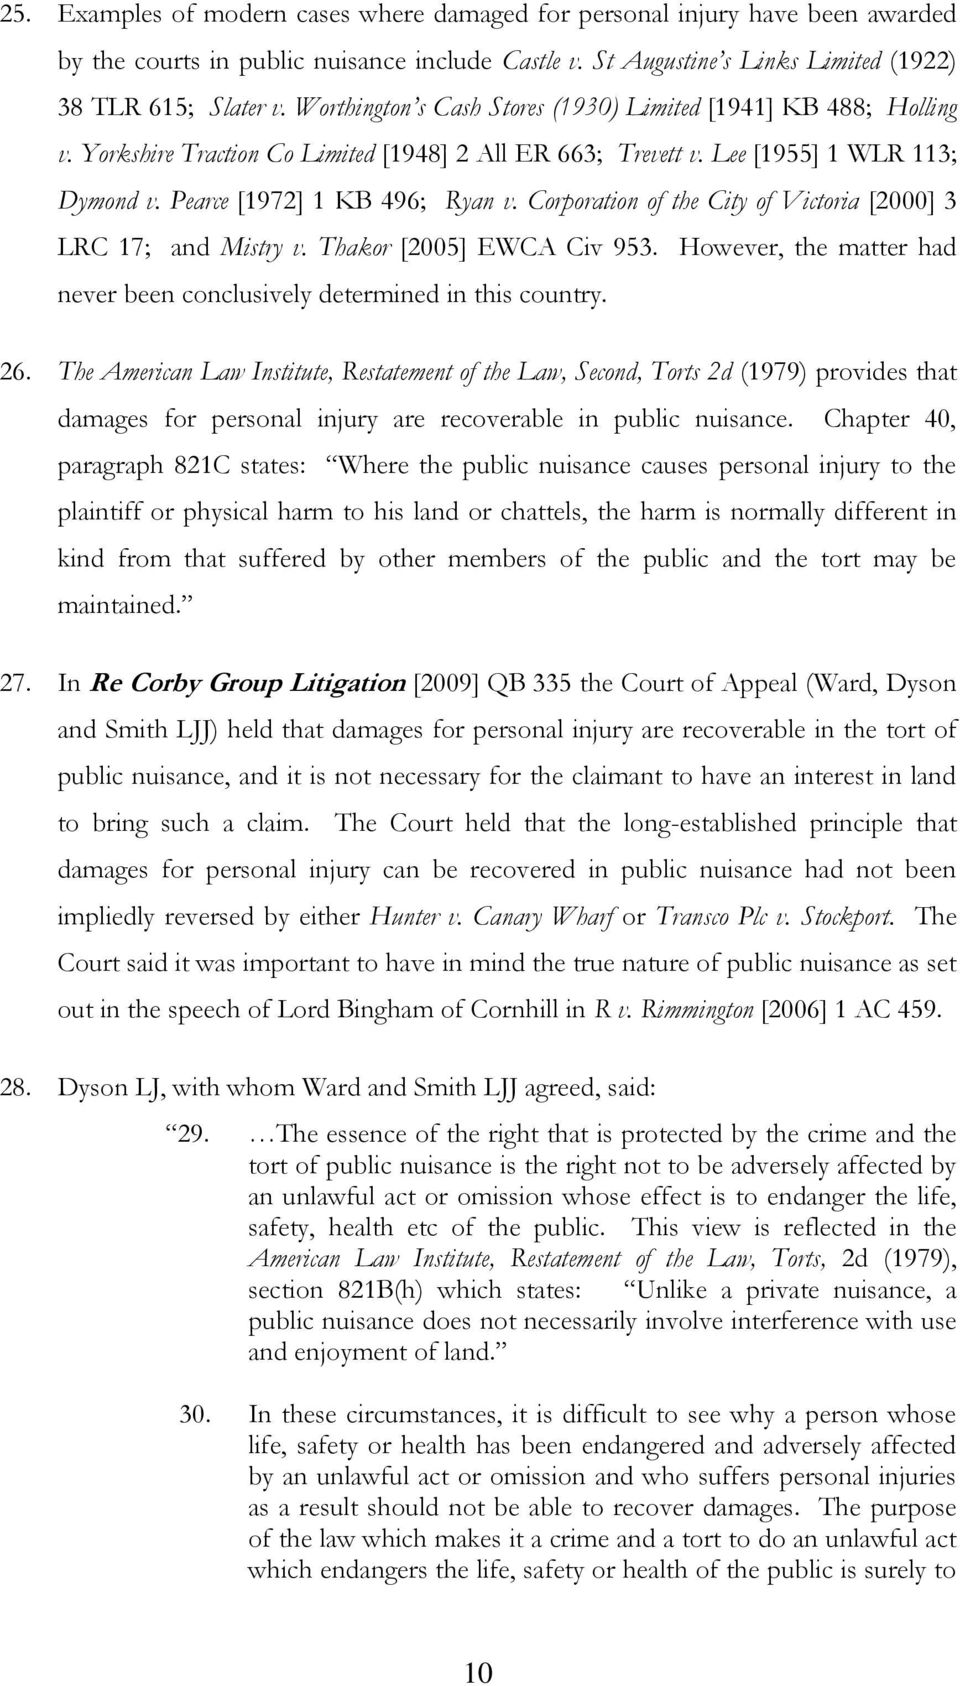 Corporation of the City of Victoria [2000] 3 LRC 17; and Mistry v. Thakor [2005] EWCA Civ 953. However, the matter had never been conclusively determined in this country. 26.